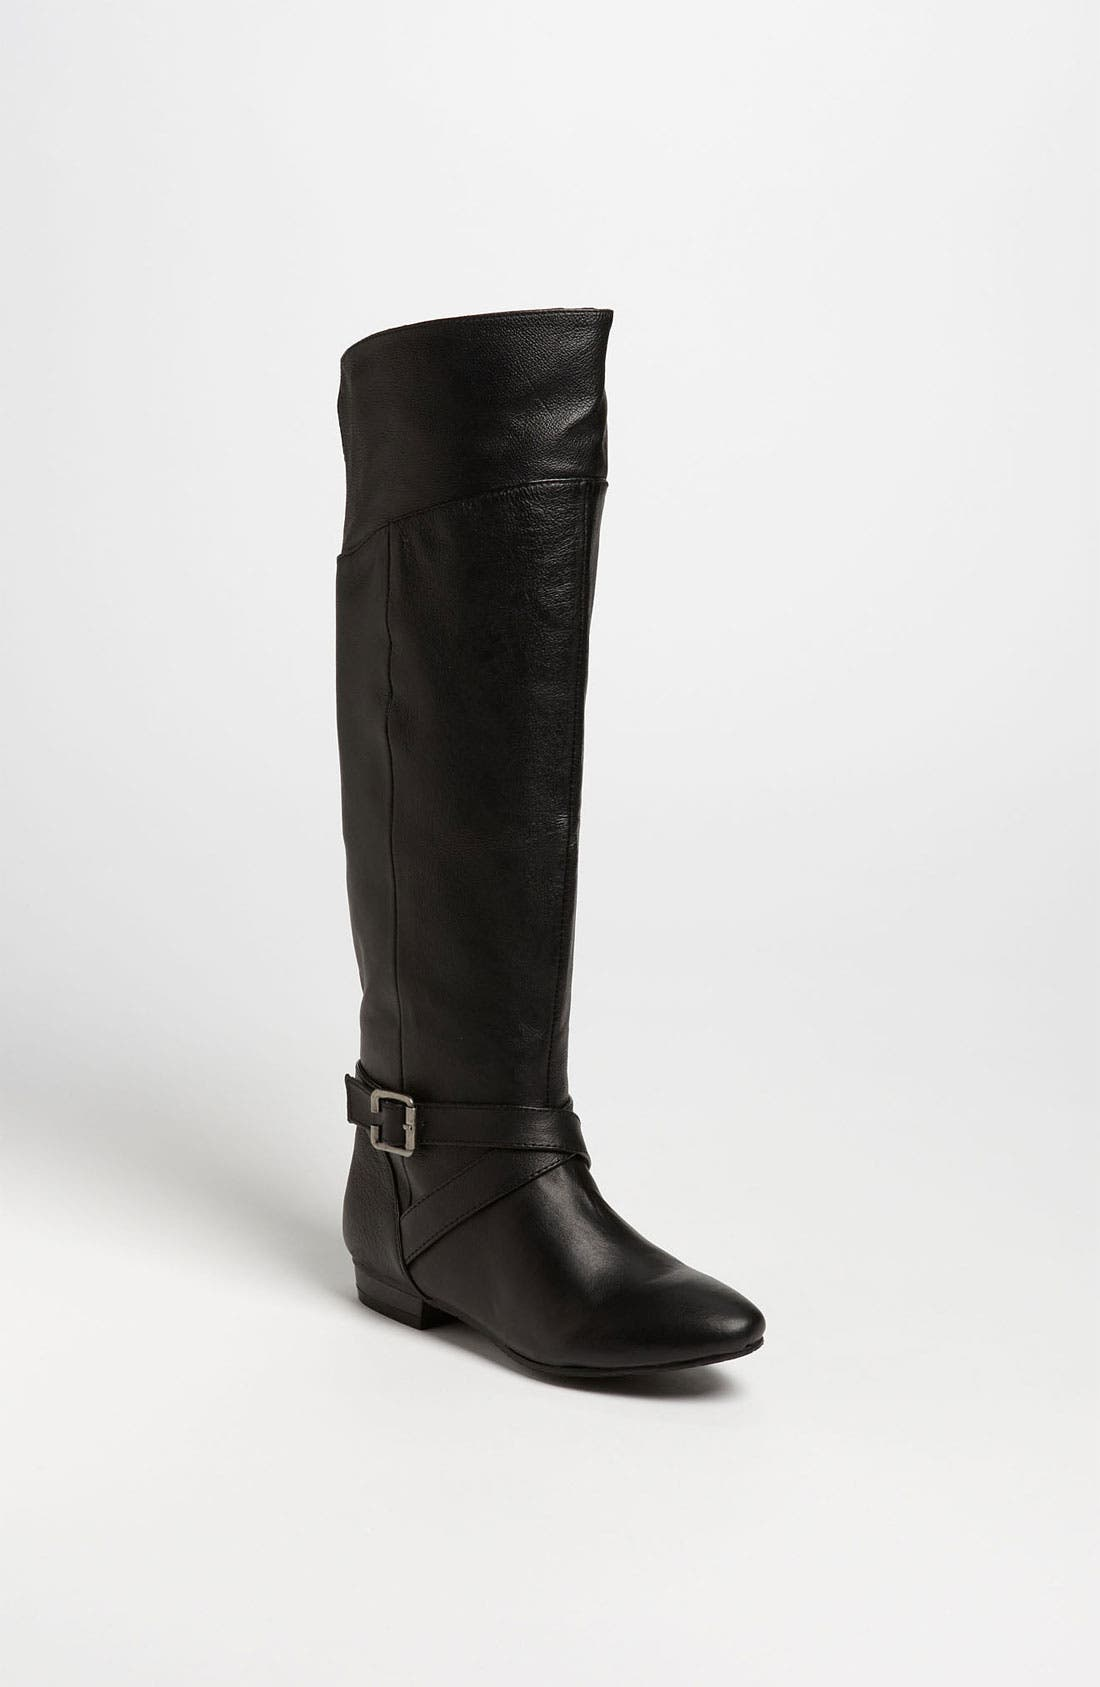 Main Image - Chinese Laundry 'Spring Street' Boot (Wide Calf)